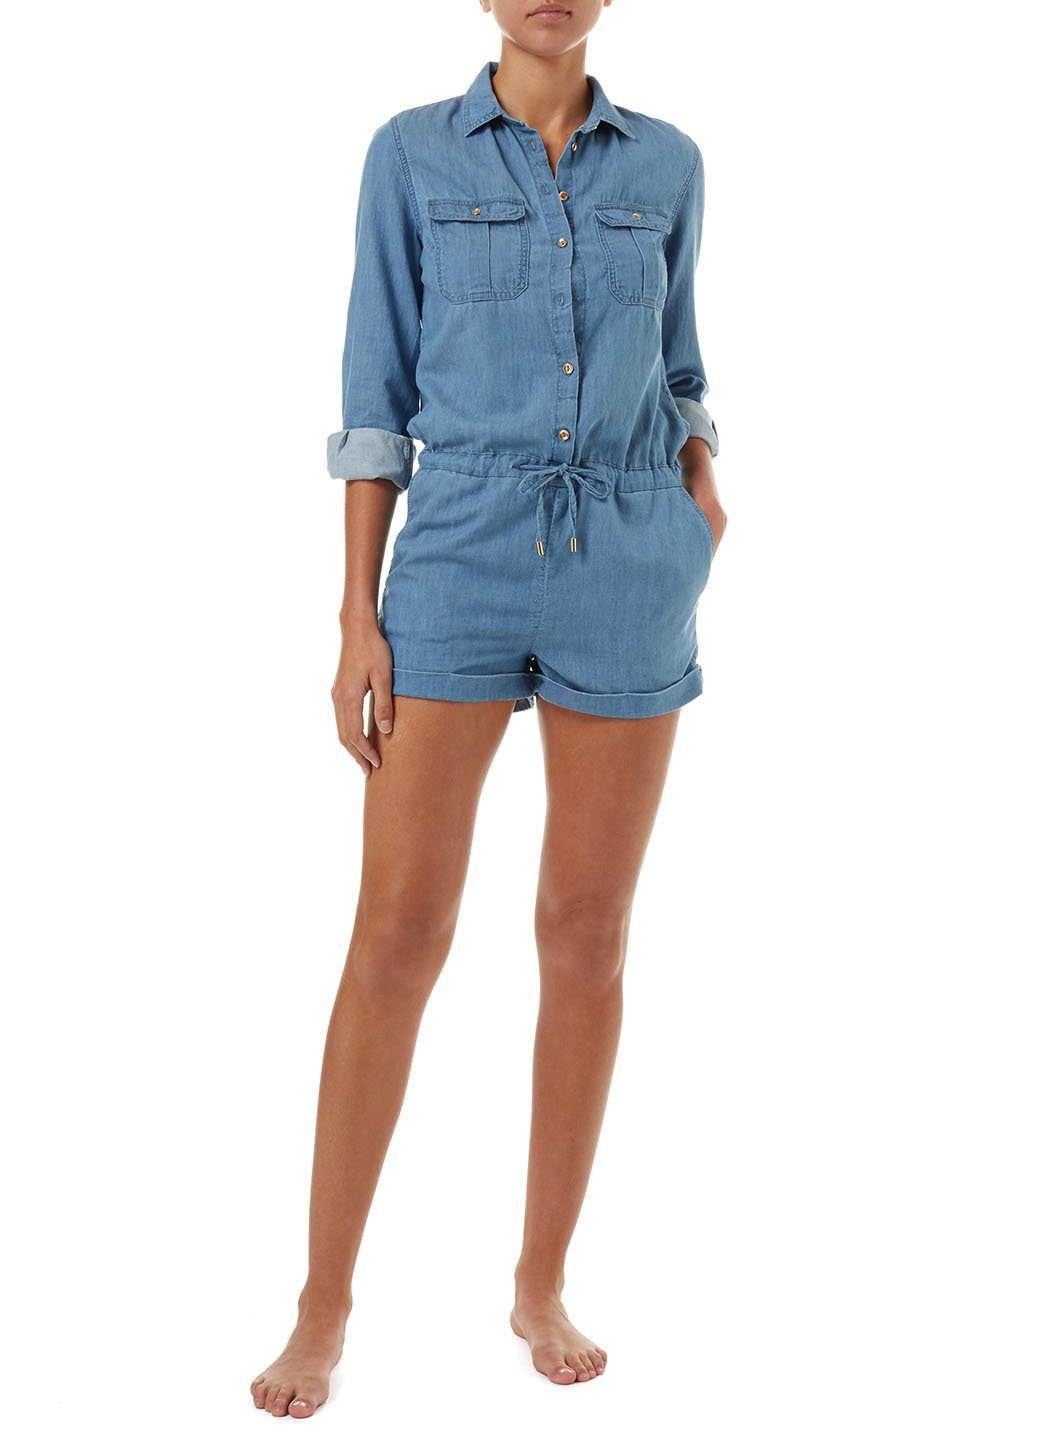 honour blue denim utility playsuit 2019 2E